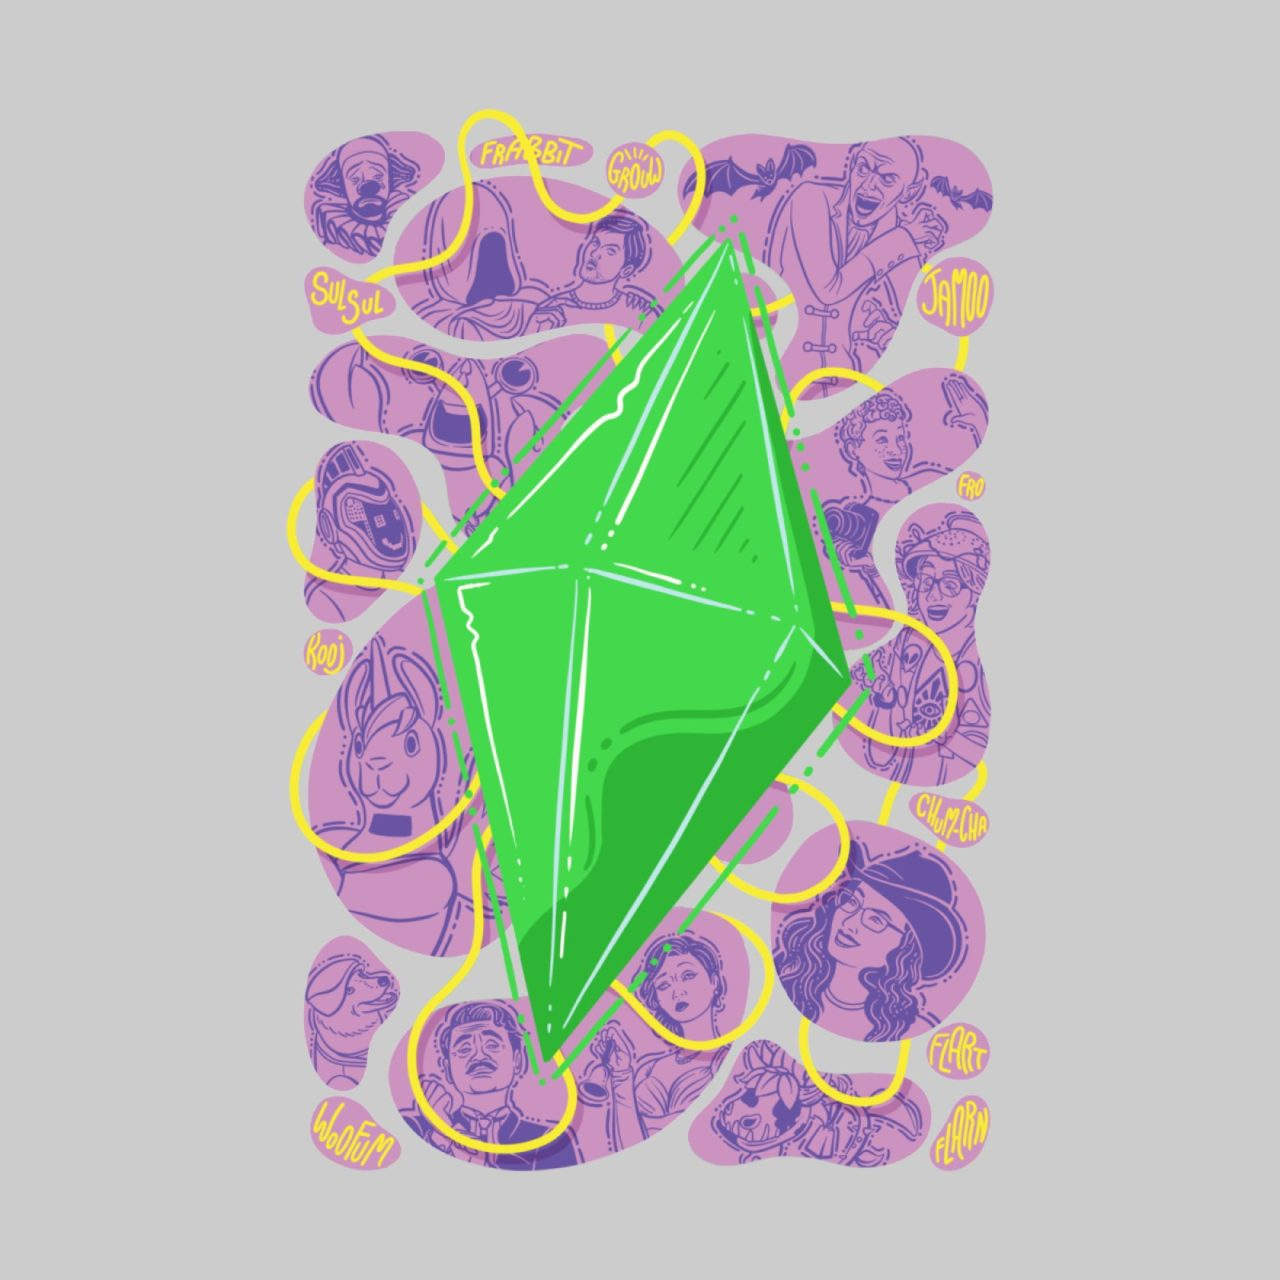 Funky plumbob from The Sims